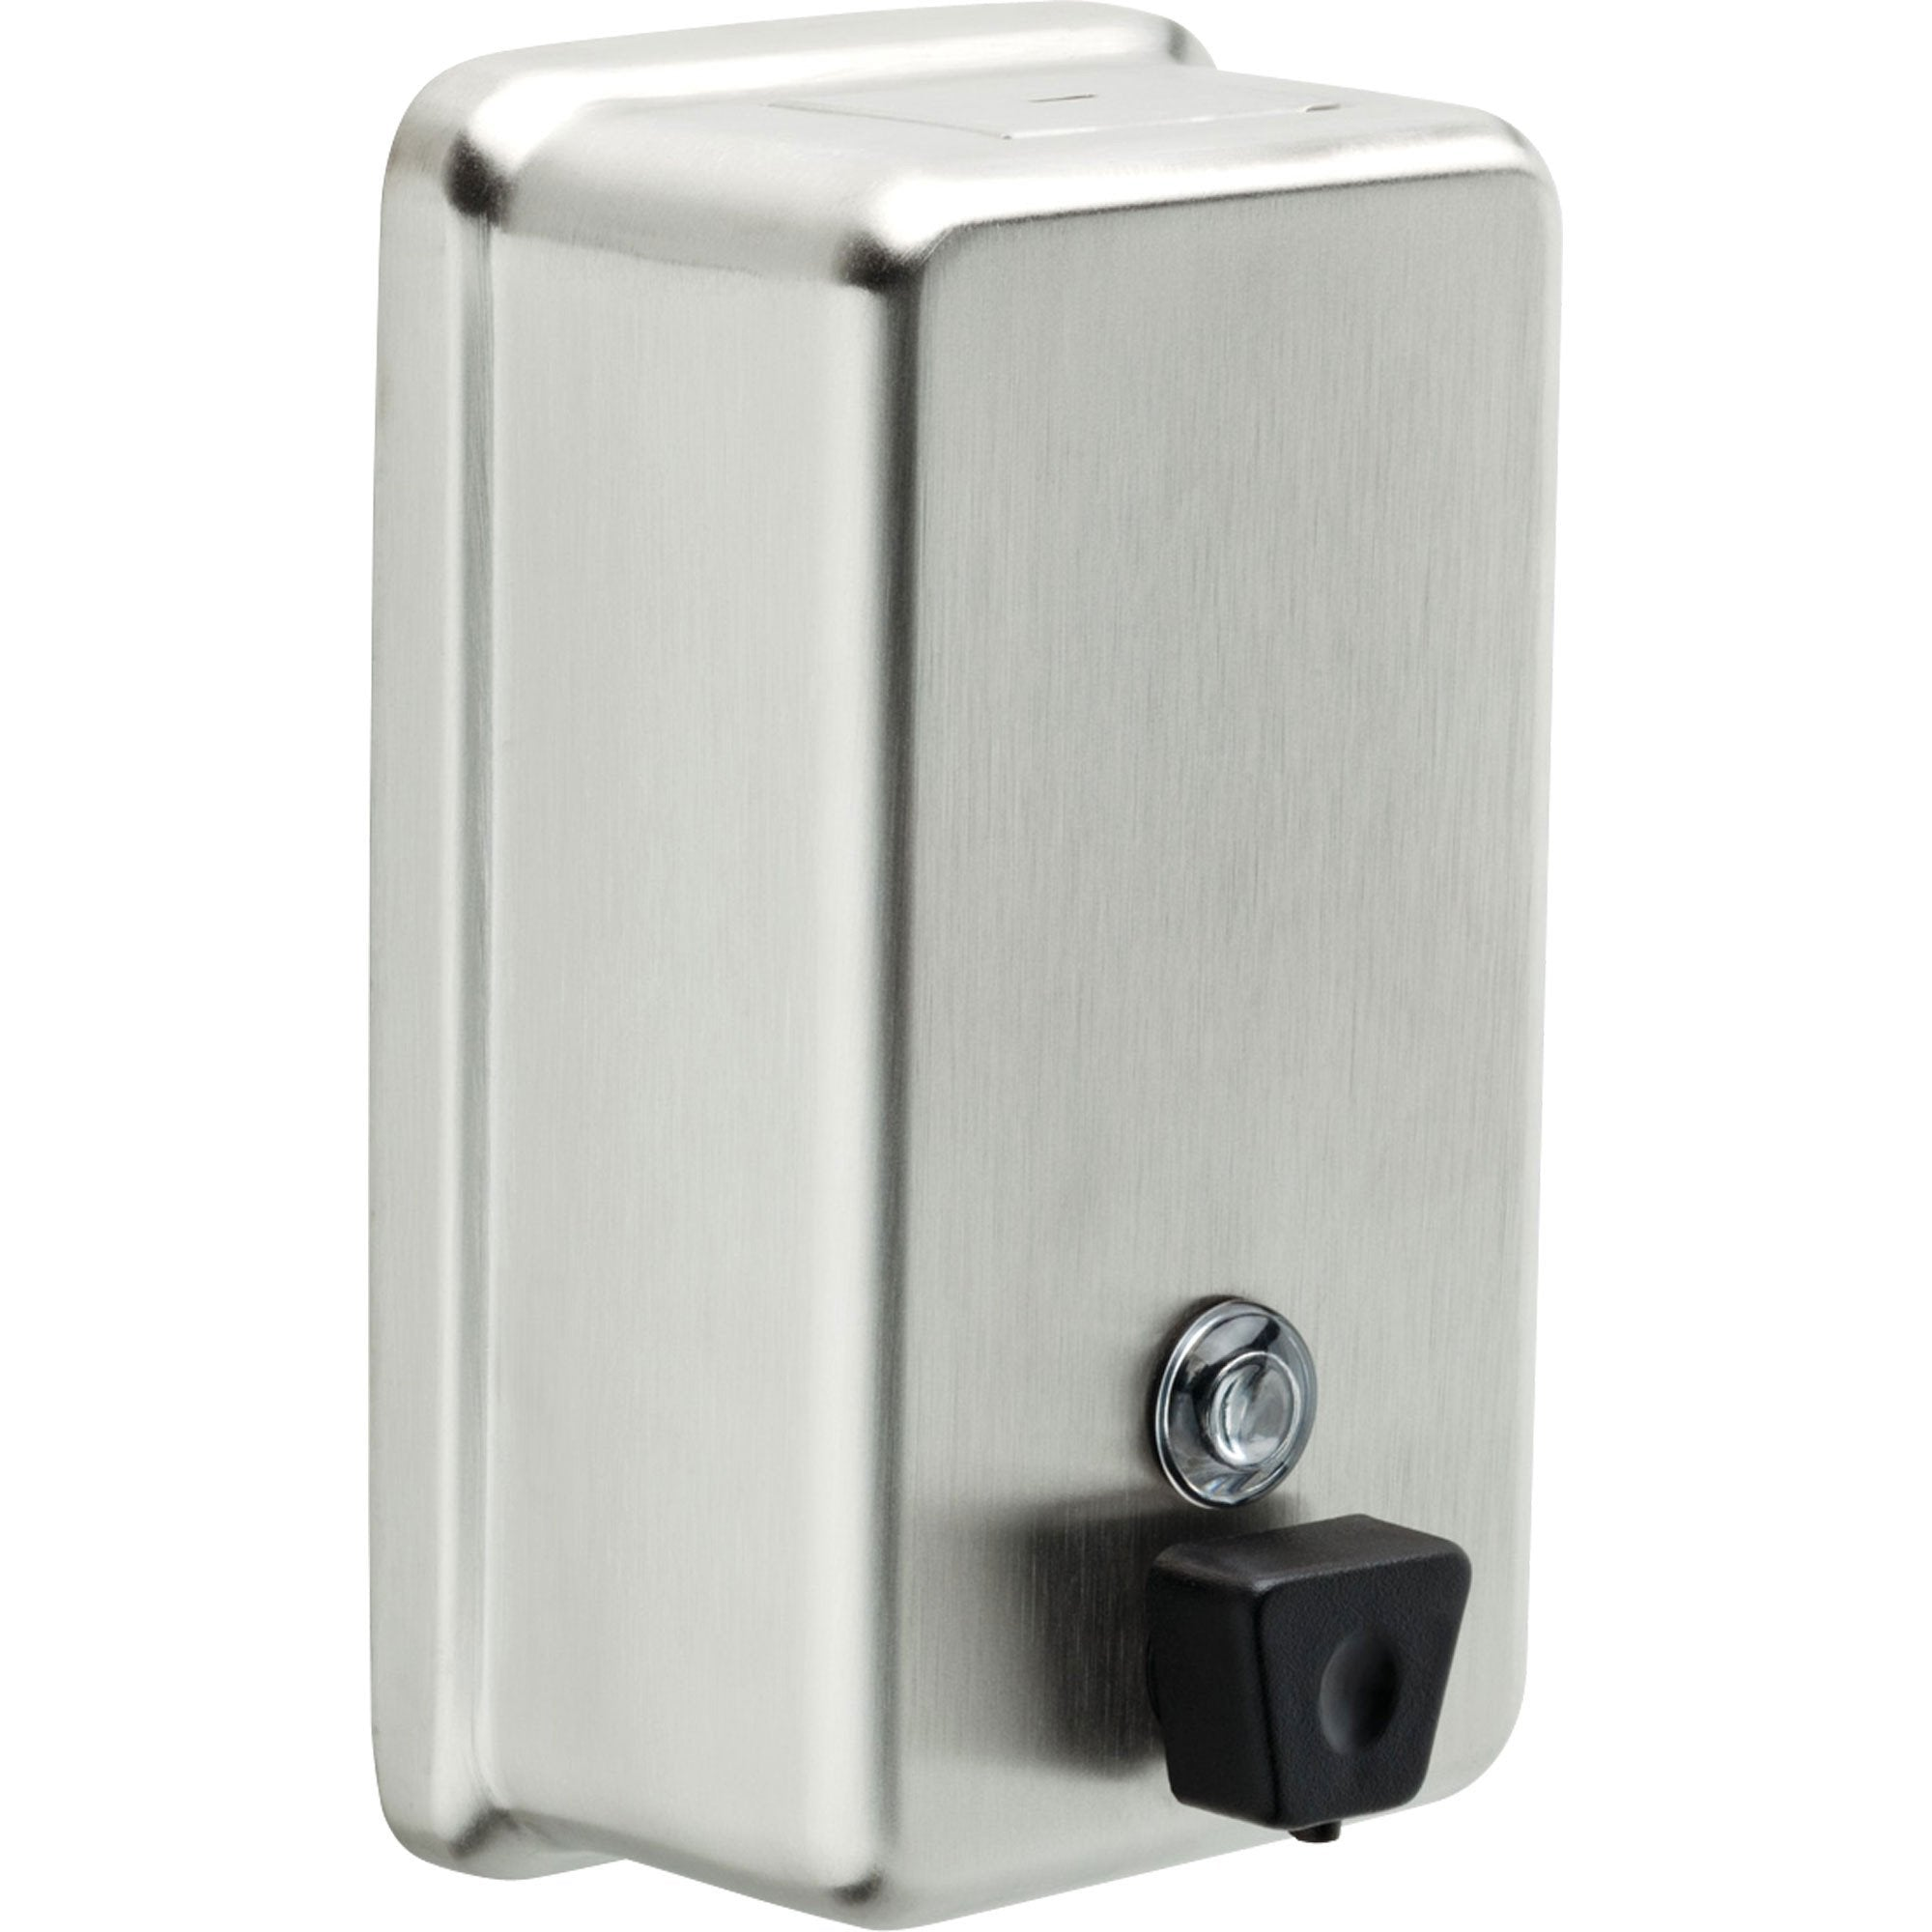 Delta Vertical Wall-Mount Liquid Soap Dispenser in Stainless Finish 572955